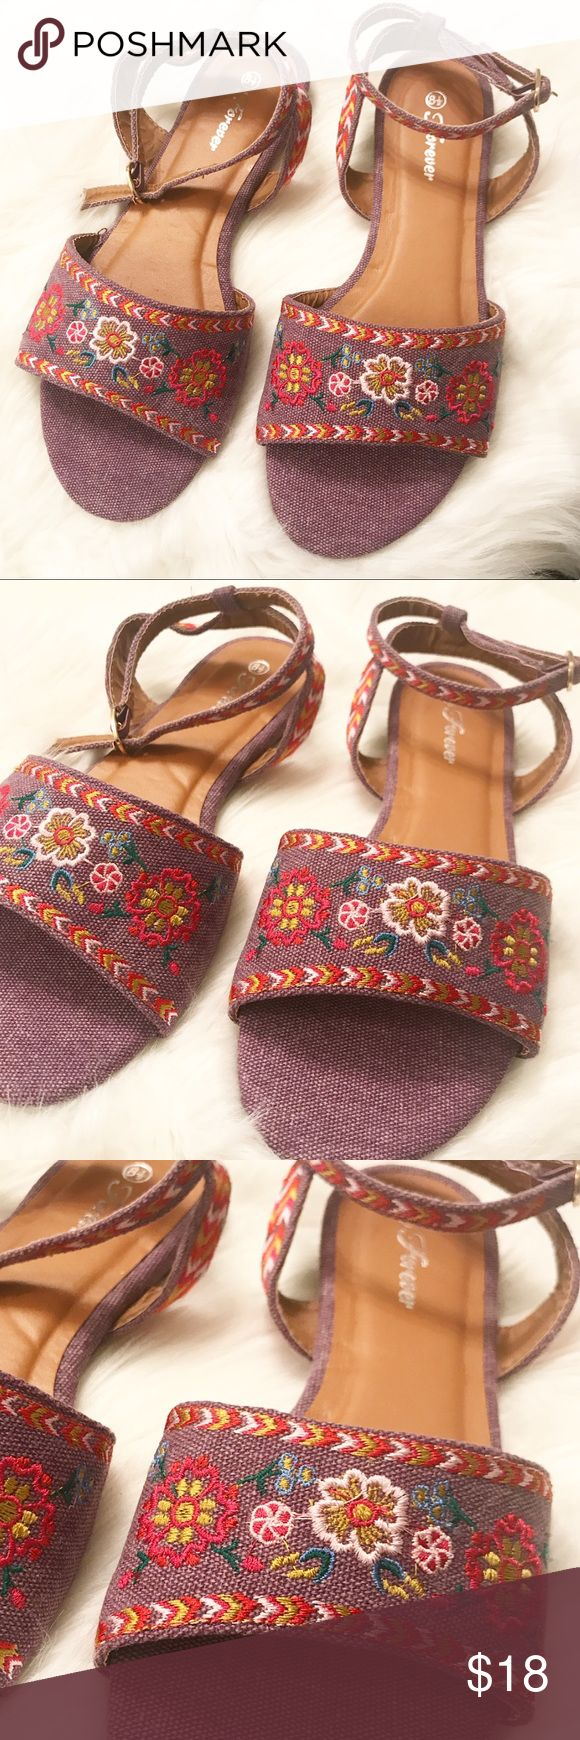 Purple Embroidered Sandals This is a purple embroidered flat sandals. True to size. Forever Shoes Sandals